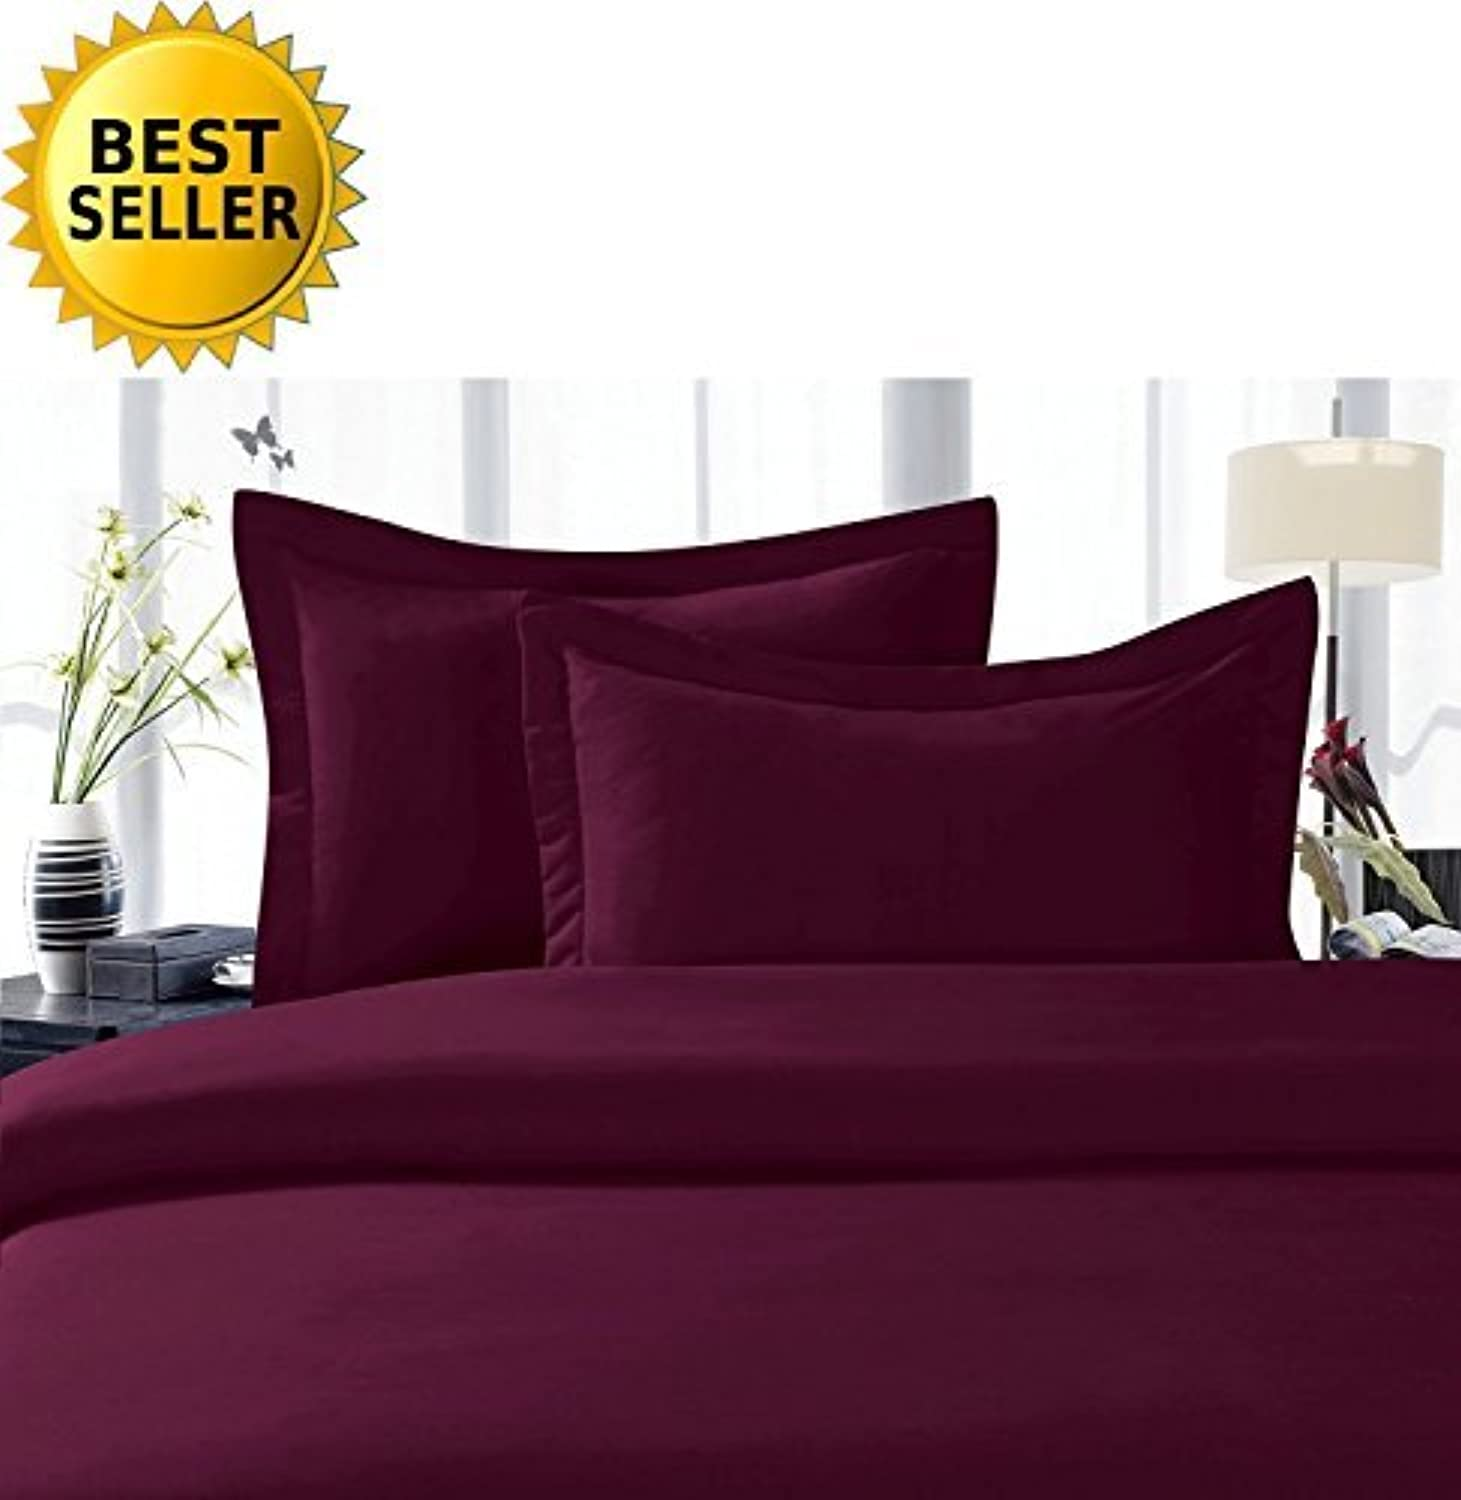 Elegant Comfort 1500 Thread Count Luxury Egyptian Quality Wrinkle and Fade Resistant 3-Piece Sheet Set, Twin Twin X-grand, violet by Elegant Comfort